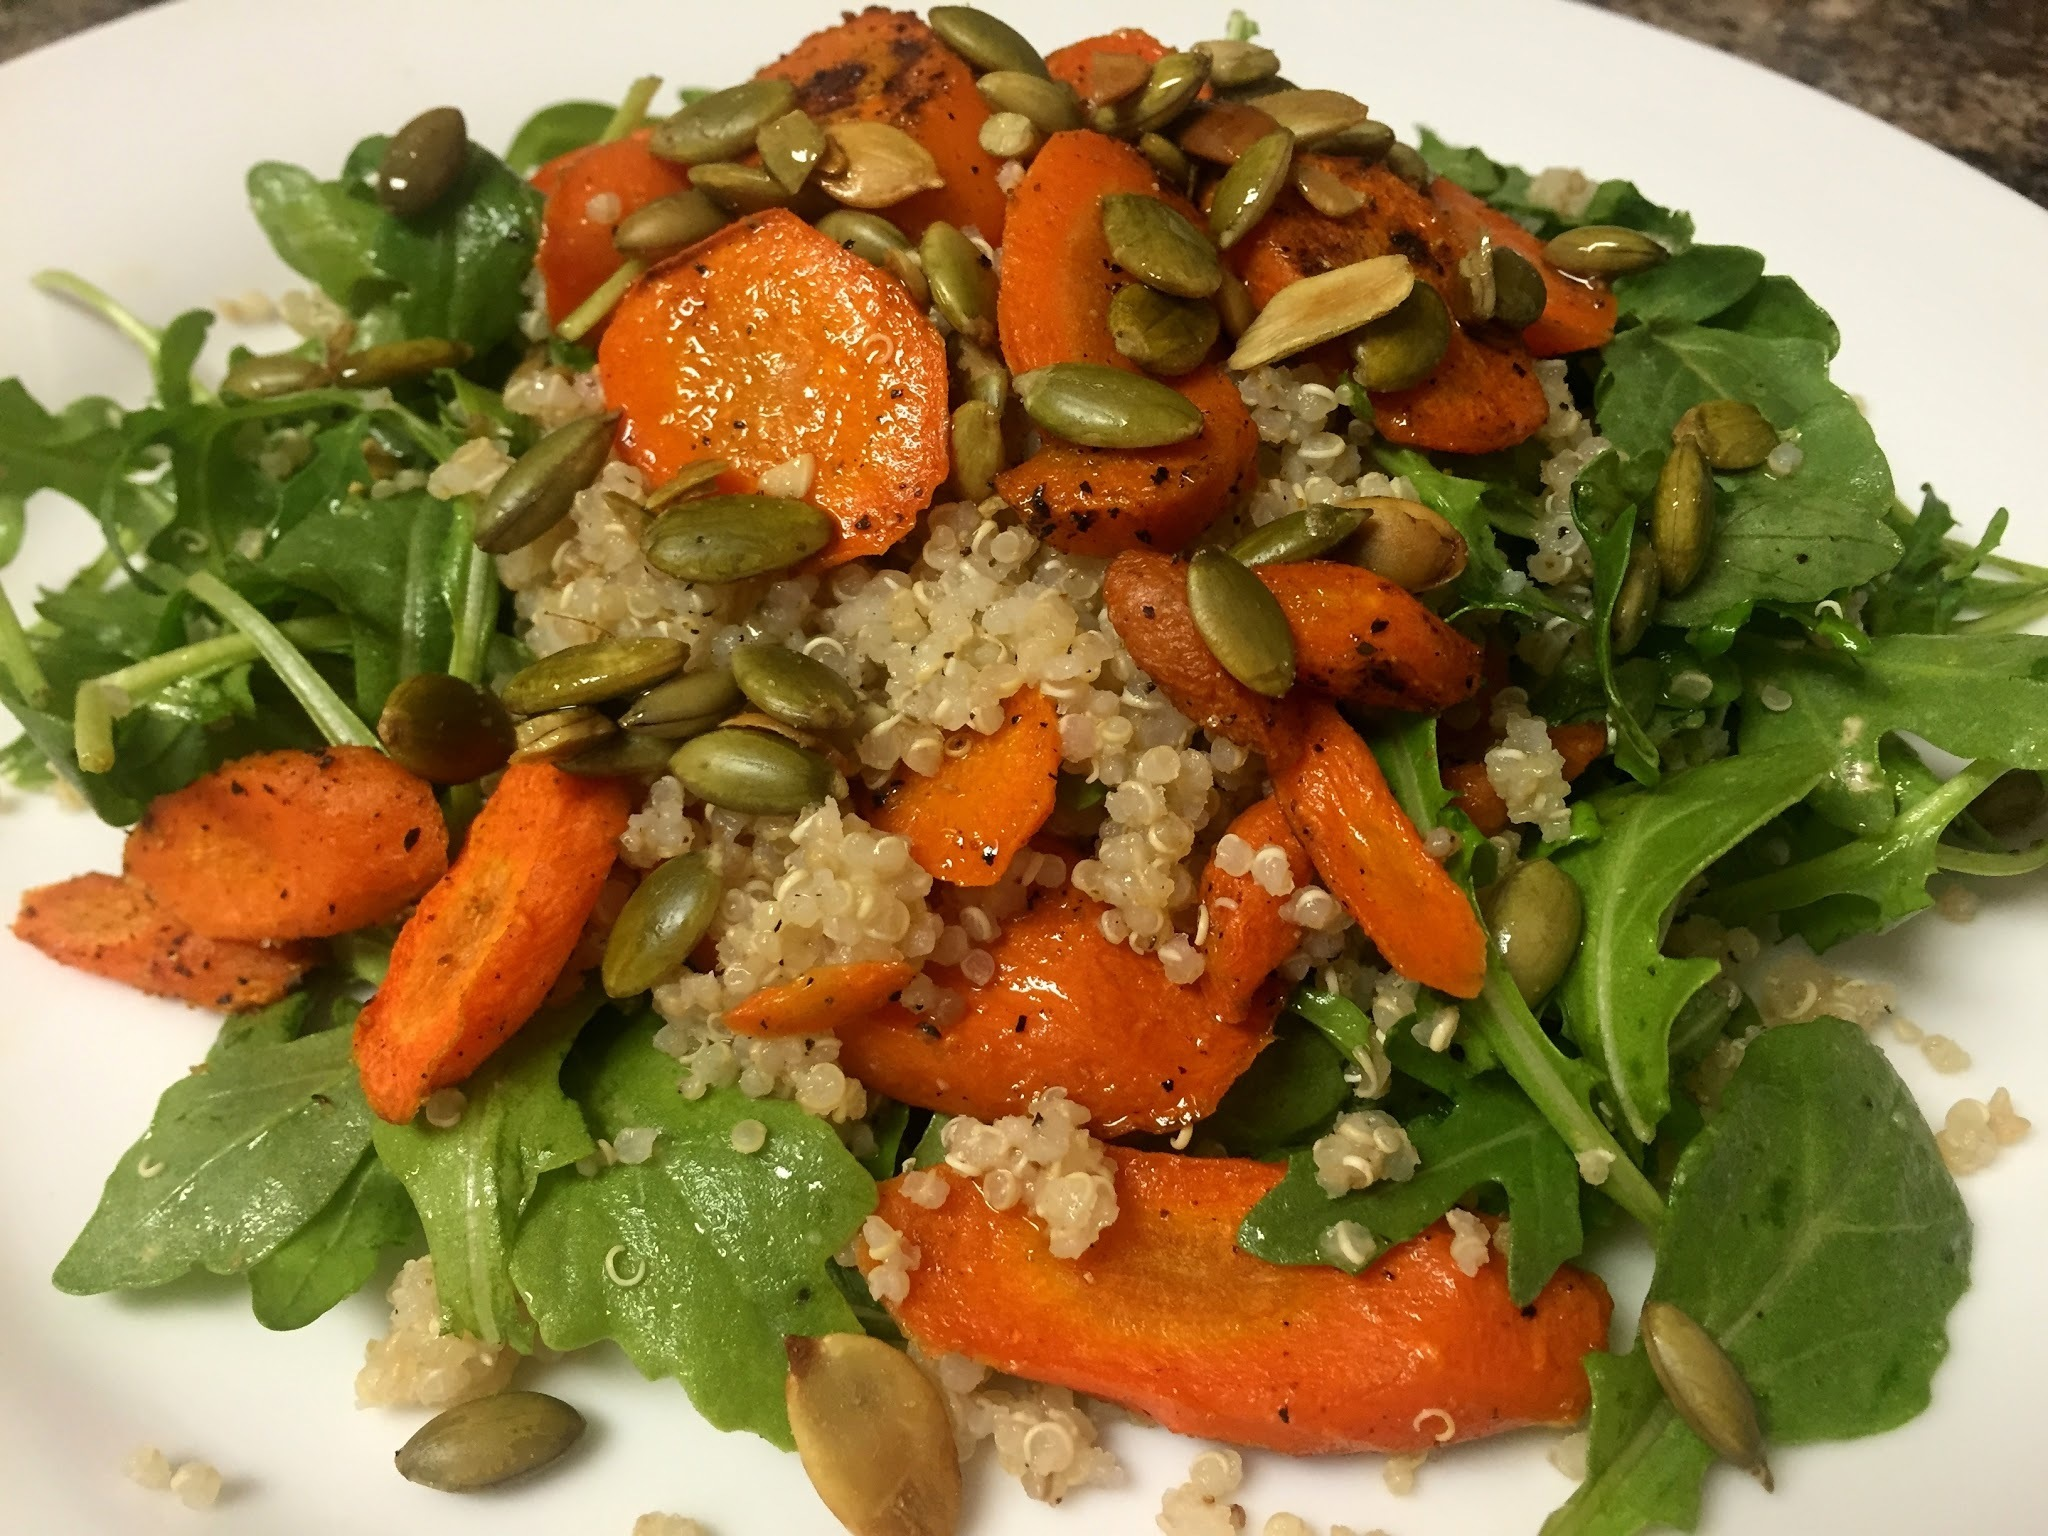 Spice Roasted Carrot Salad with Arugula, Quinoa, Pumpkin Seeds, and Lime Vinaigrette